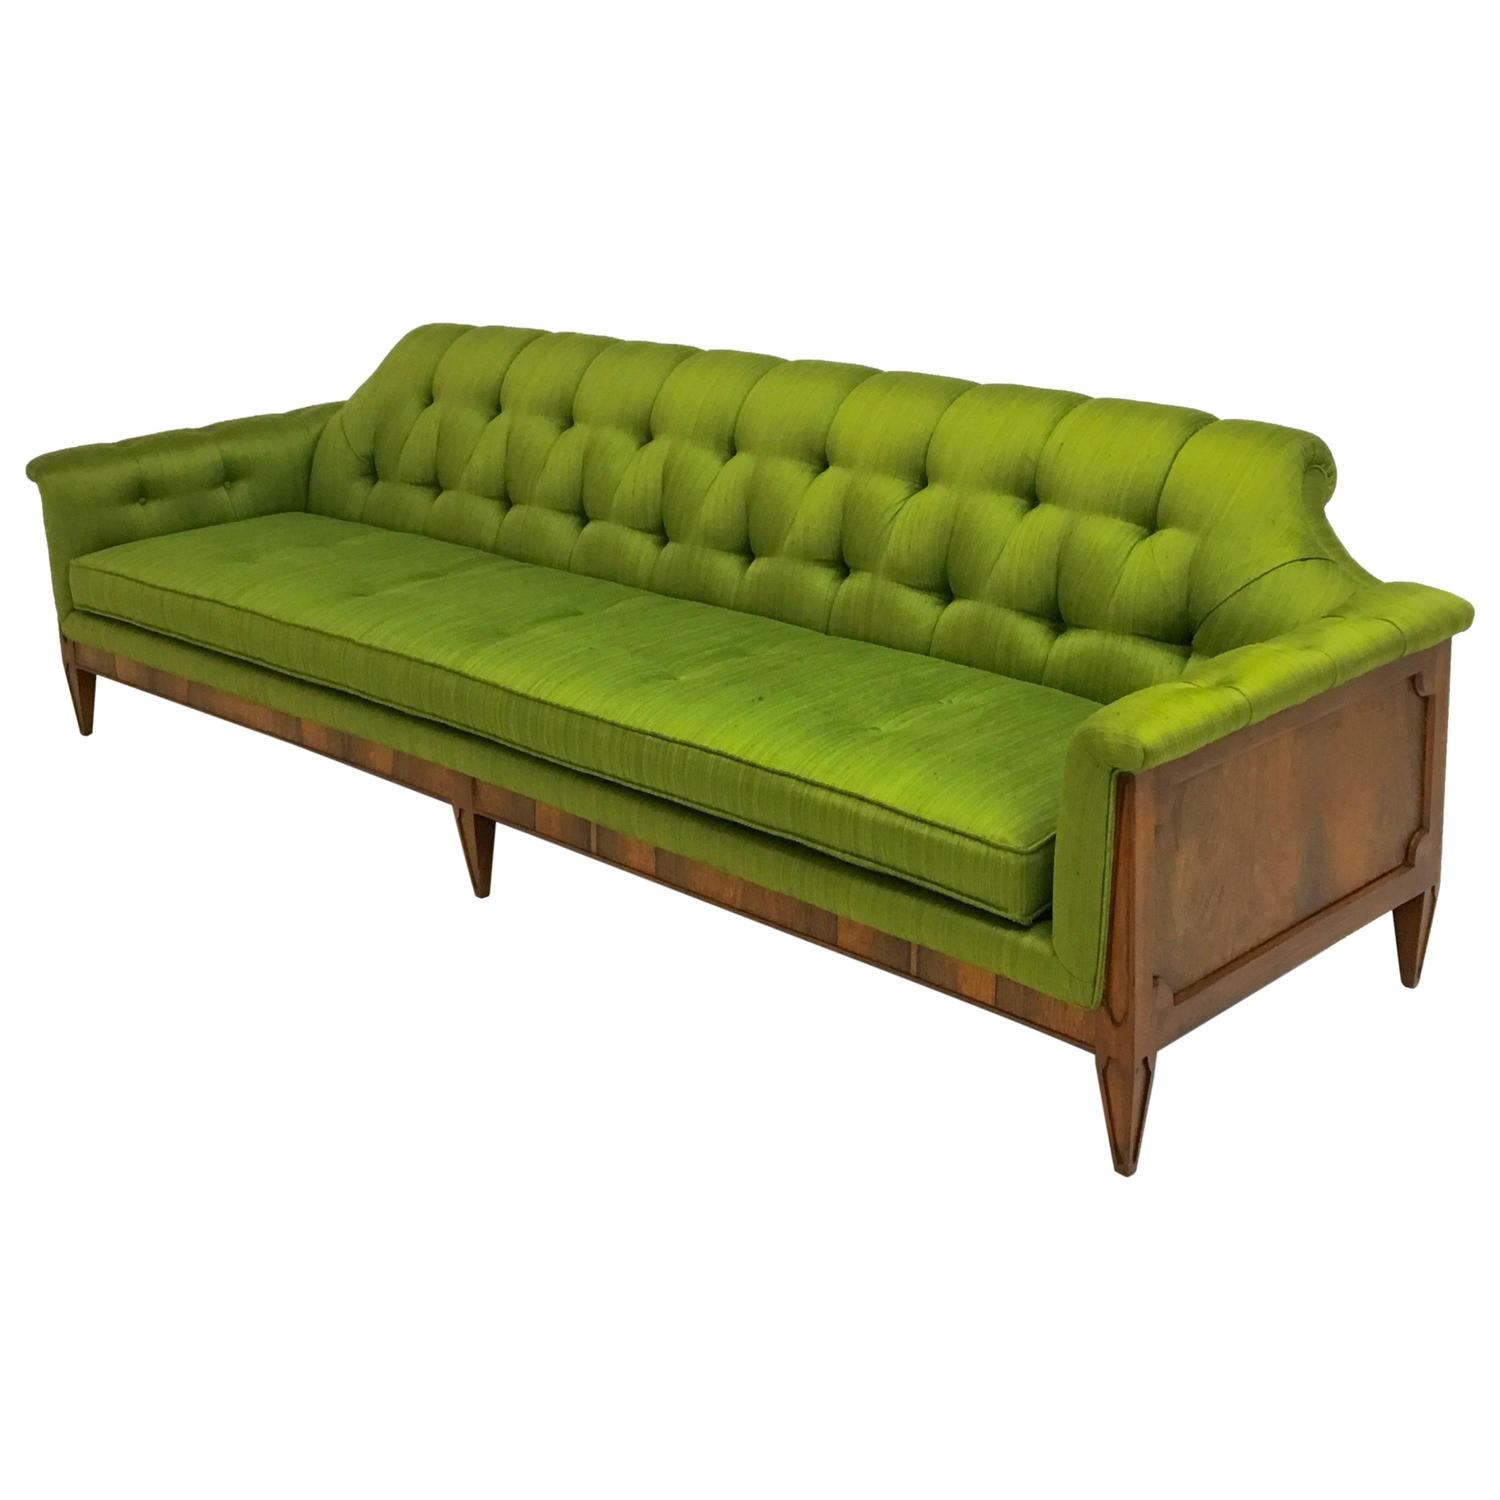 Mid century hollywood regency style tufted sofa for sale for Tufted couches for sale